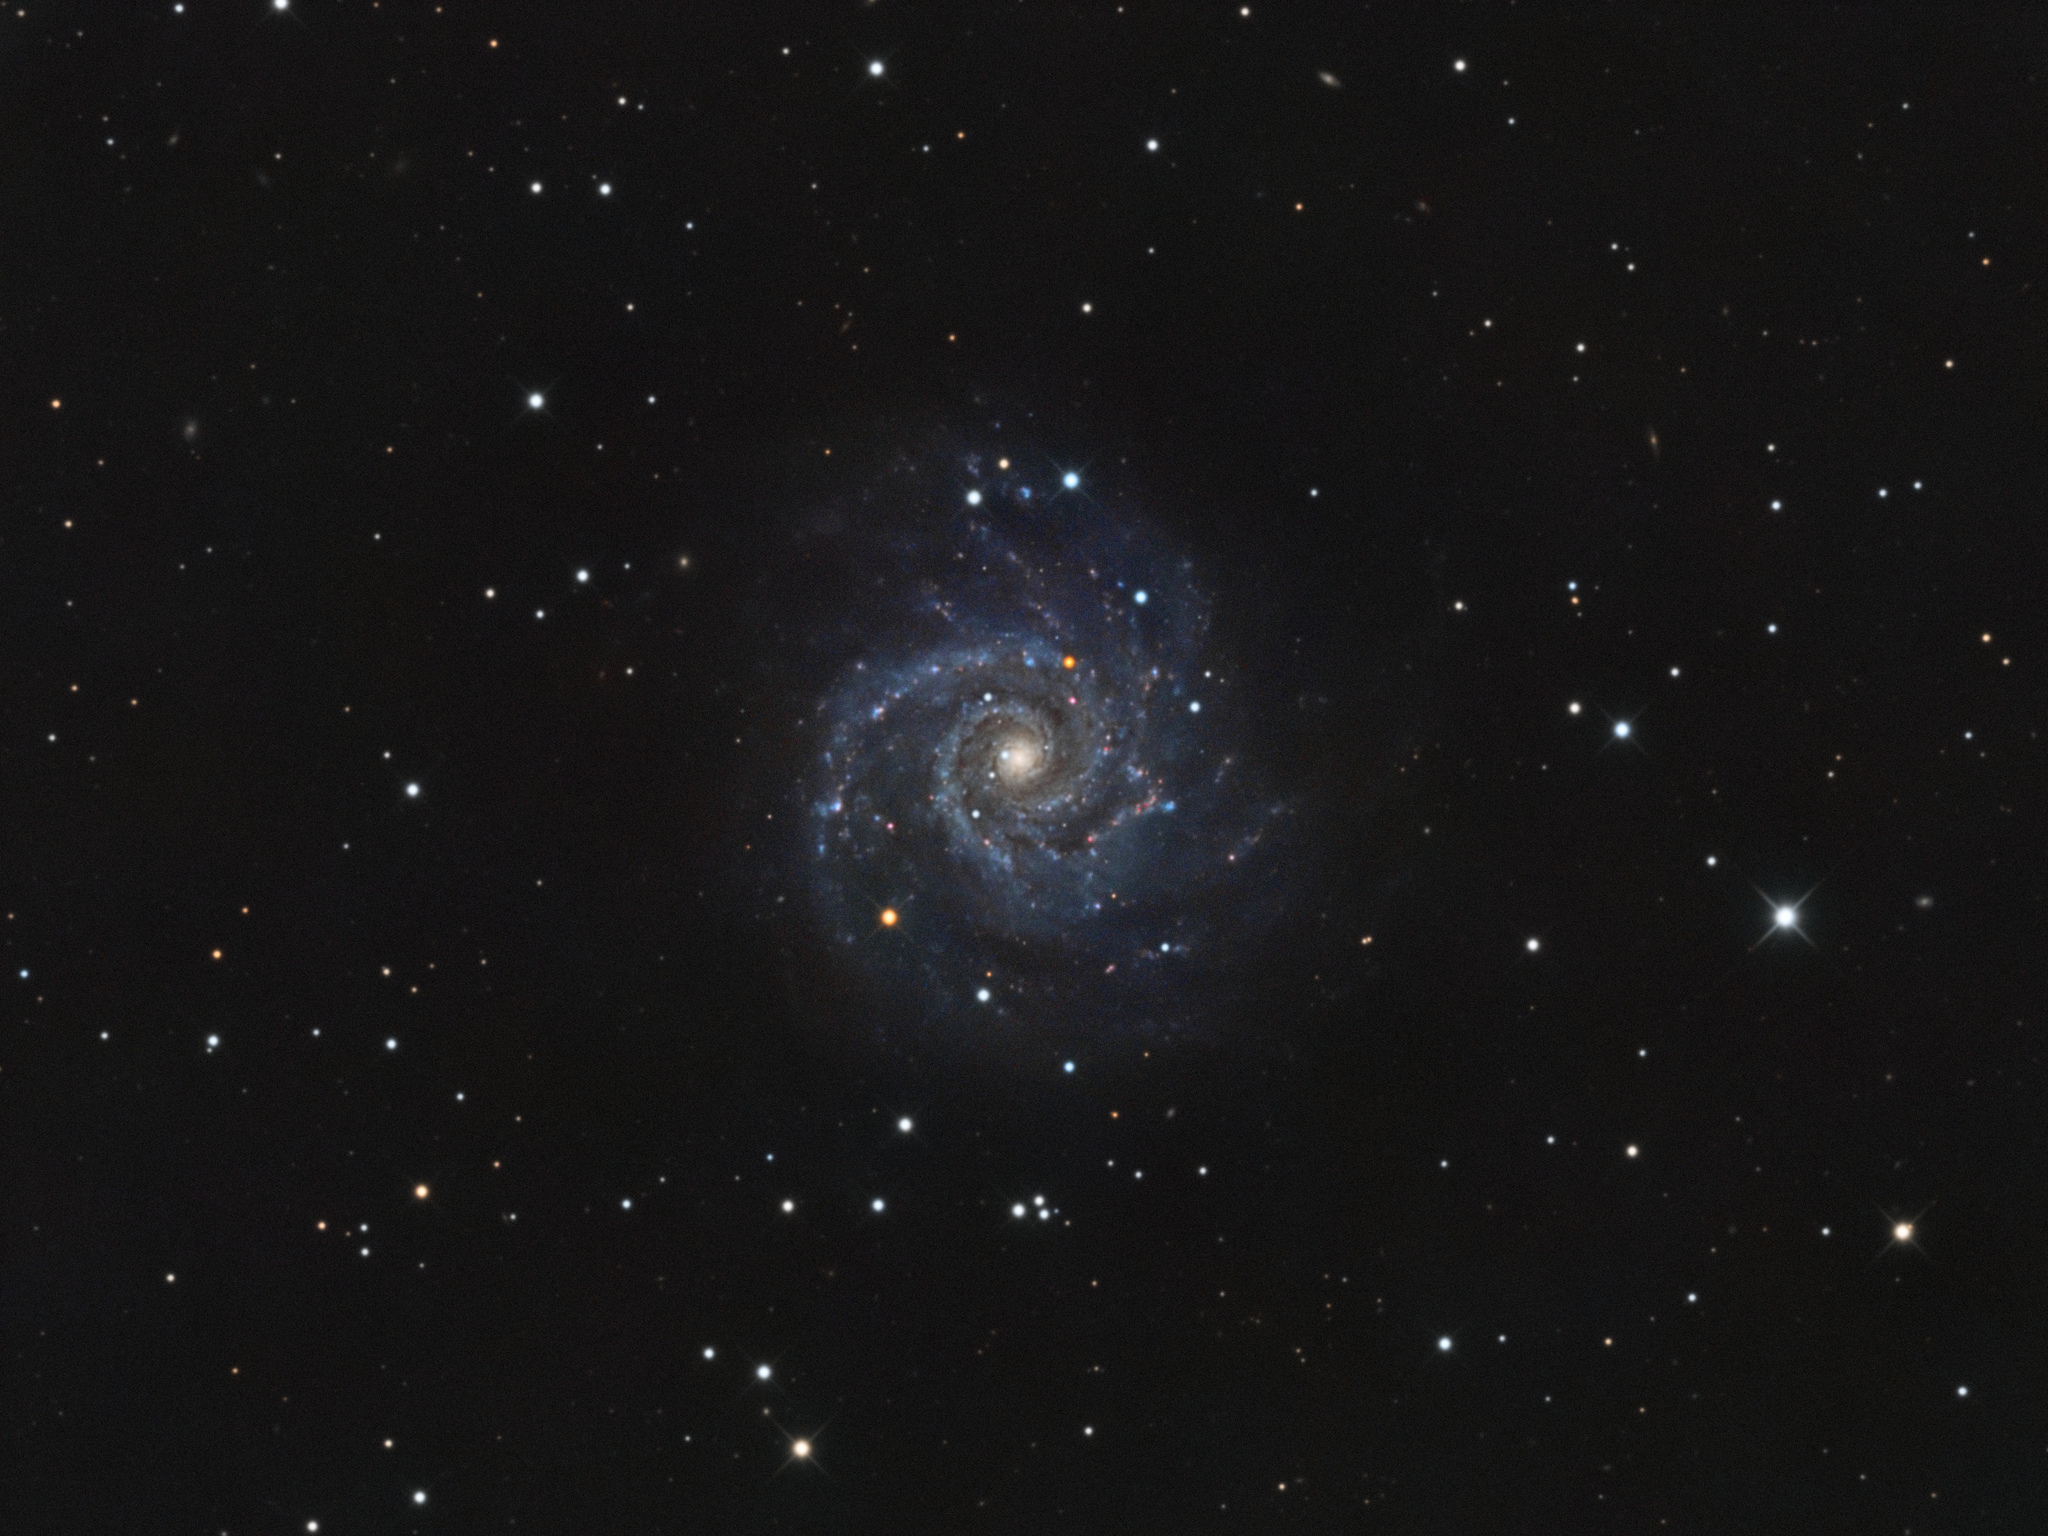 M74 - Phantom Galaxy   Also known as NGC628, M74 is a spiral galaxy located in the constellation of Pisces at a distance of about 32 million light-years away. It is roughly 95,000 light-years across in diameter and contains an estimated 100 billion stars  Taken in November & December 2018 over multiple nights from Campbell, CA, USA. Sky: 18.80 mag/arcsec^2  Total integration: 2,005 mins (33 hr 25 mins)  Details, Equipment, & Software:  Telescope: Astro-Tech AT10RCT (FL2000mm f/8)  Camera: SBIG STF-8300m (-10°C)  Filter: Astrodon 36mm LRGB  Guide: OAG-8300 with QHY5III174  Focuser: Moonlite CSL w/ high res stepper motor  Mount: Astro-Physics AP1100GTO  Capture: Sequence Generator Pro  Frames:  Astrodon L: 151x300s  Astrodon R: 86x300s  Astrodon G: 82x300s  Astrodon B: 82x300s  Stacking/Final Processing: Pixinsight    Derryk Davis